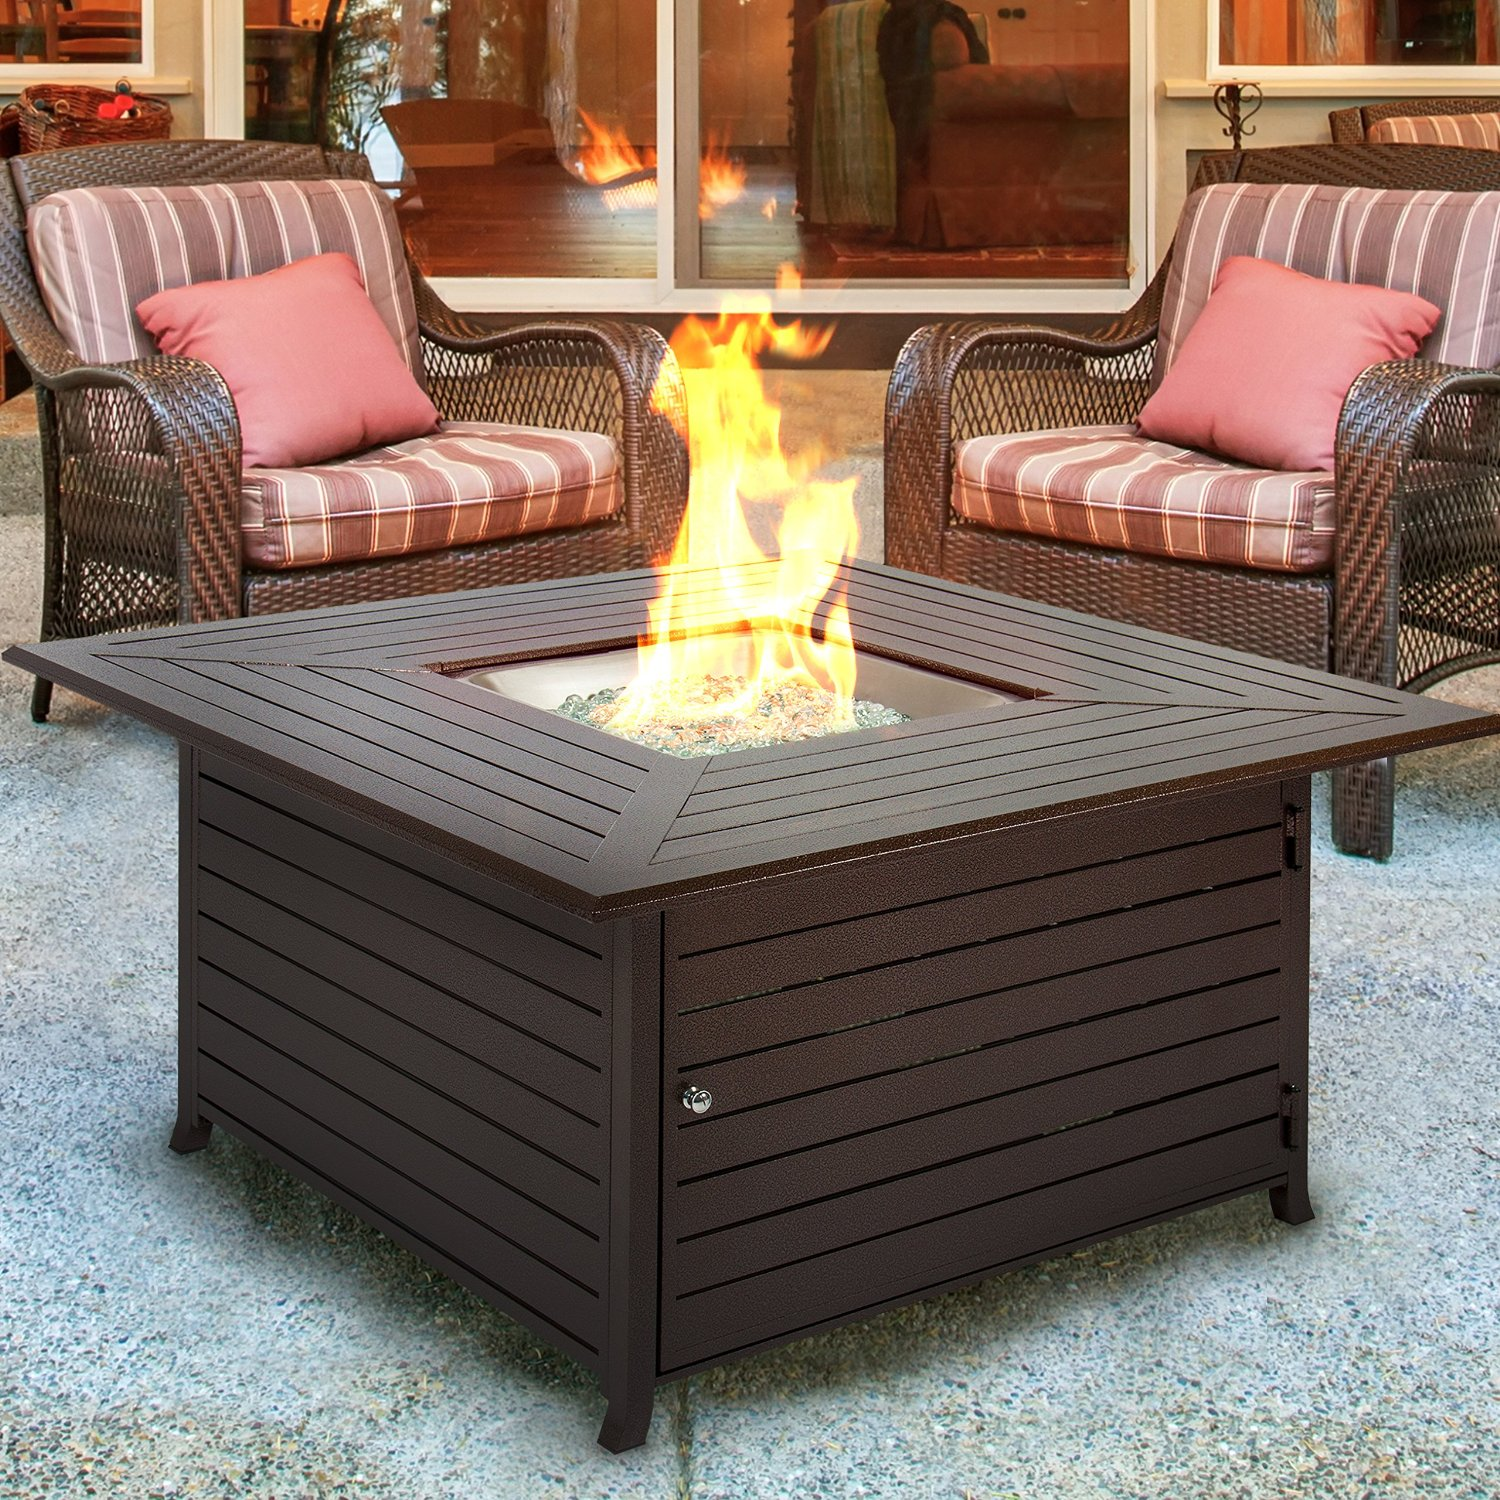 BCP Extruded Aluminum Gas Outdoor Fire Pit Table - Best Fire Pit Reviews In 2017 Complete Buying Solution Of 15K Words